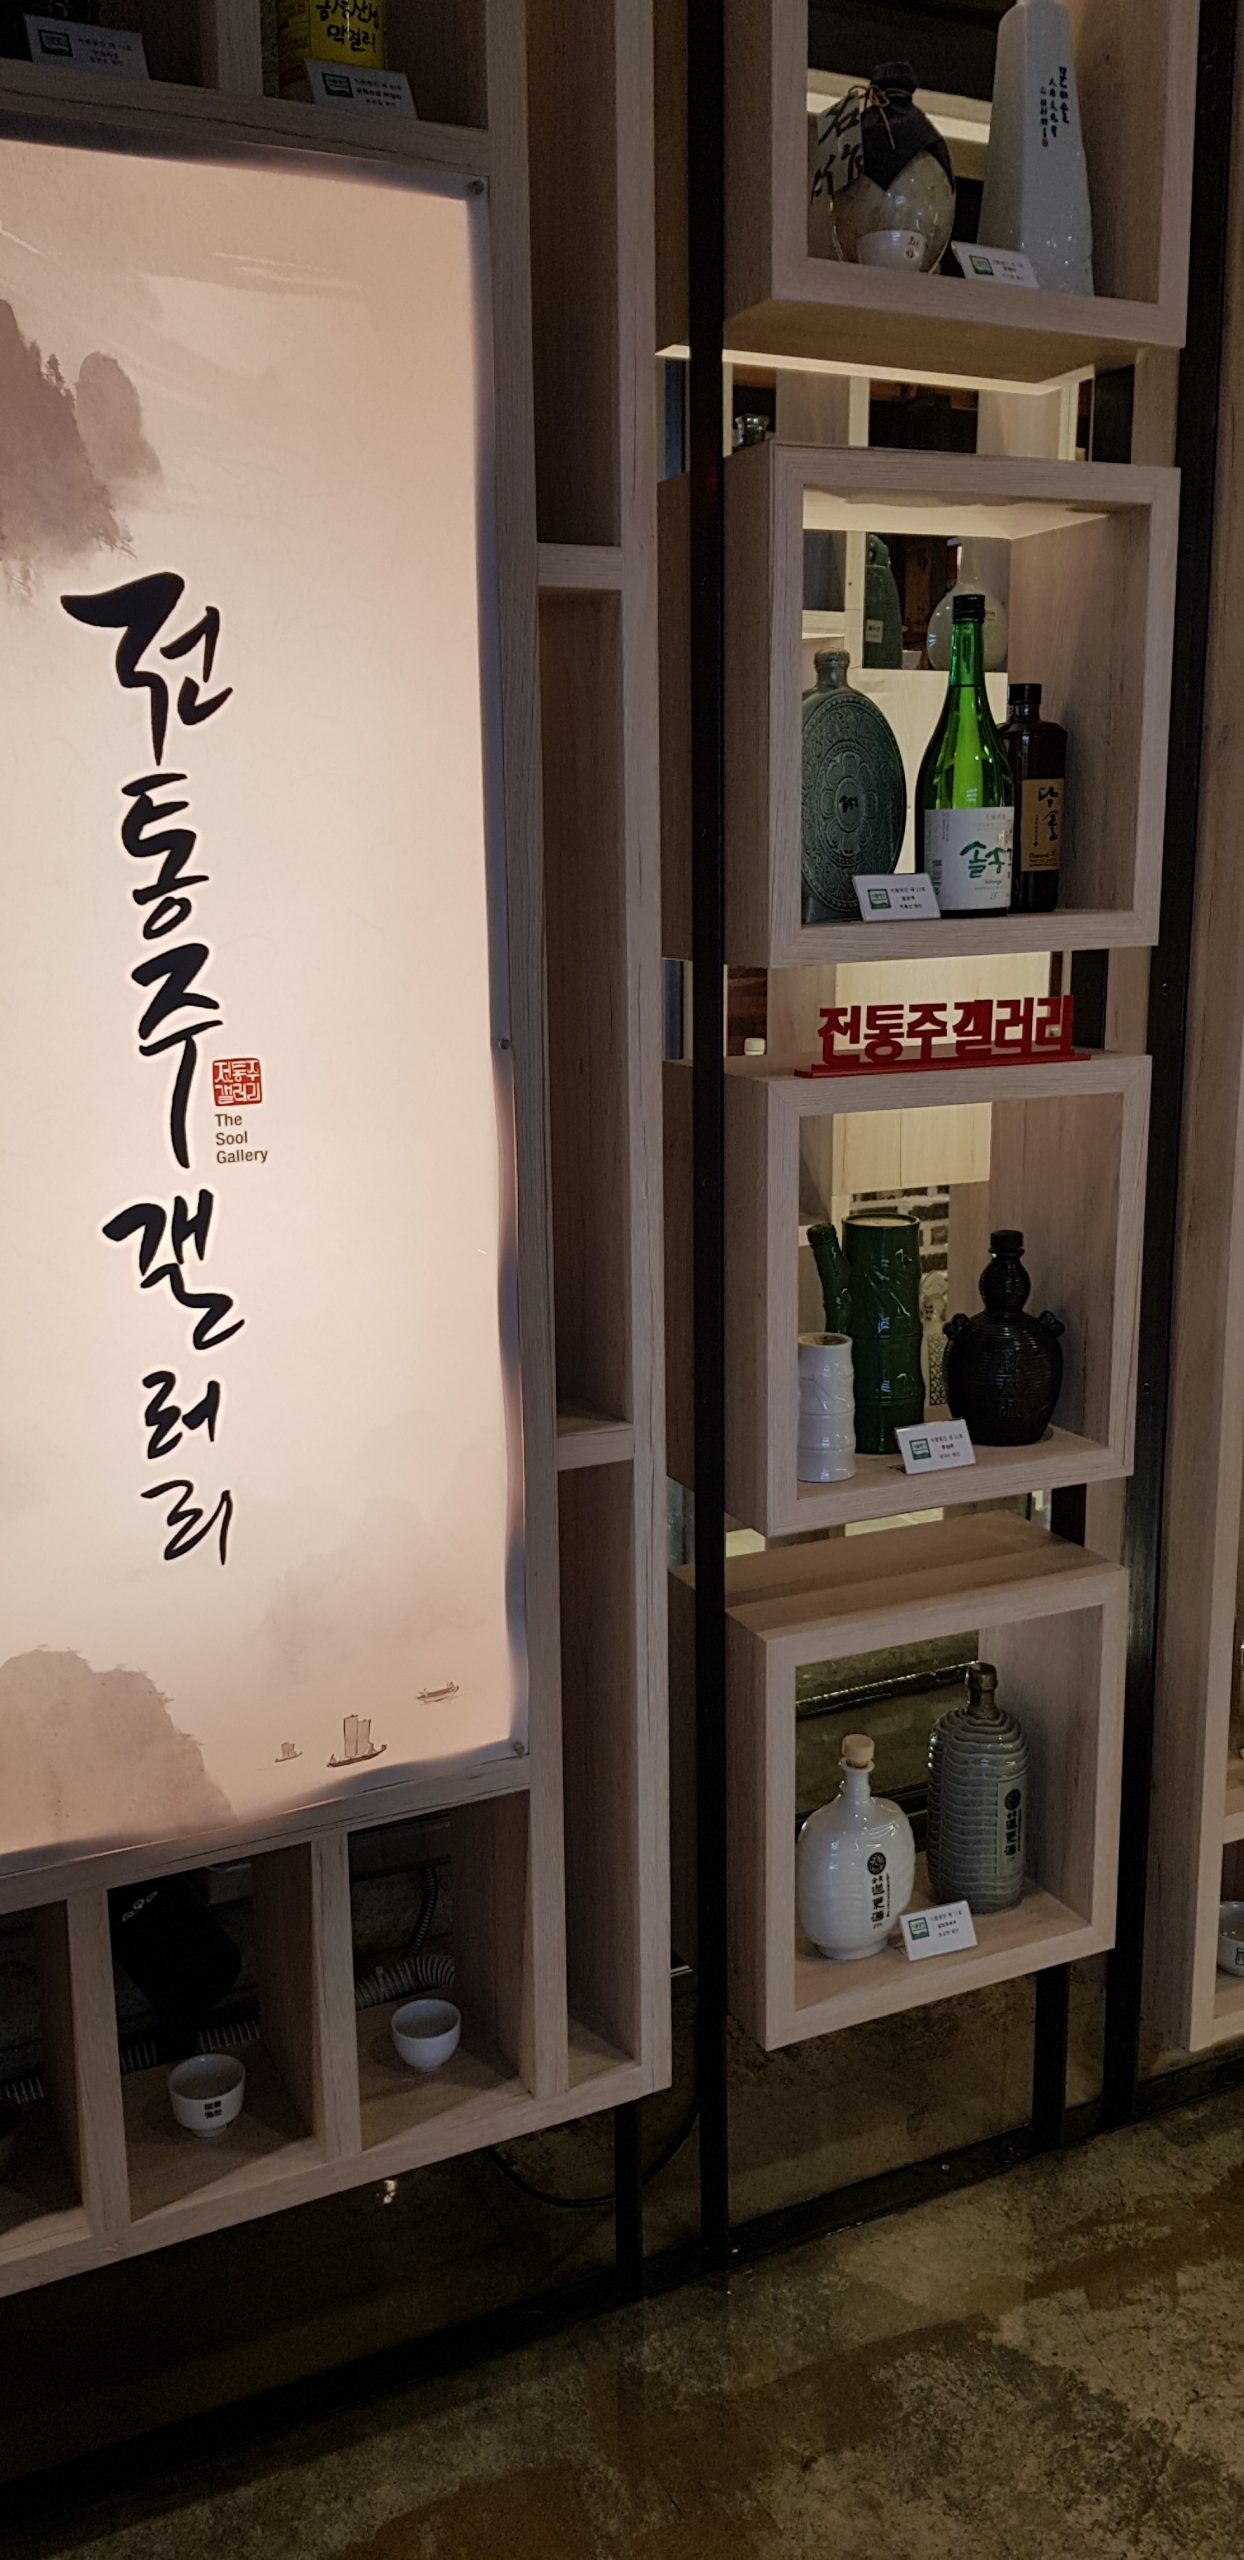 Korean traditional liquor on display at The Sool Gallery